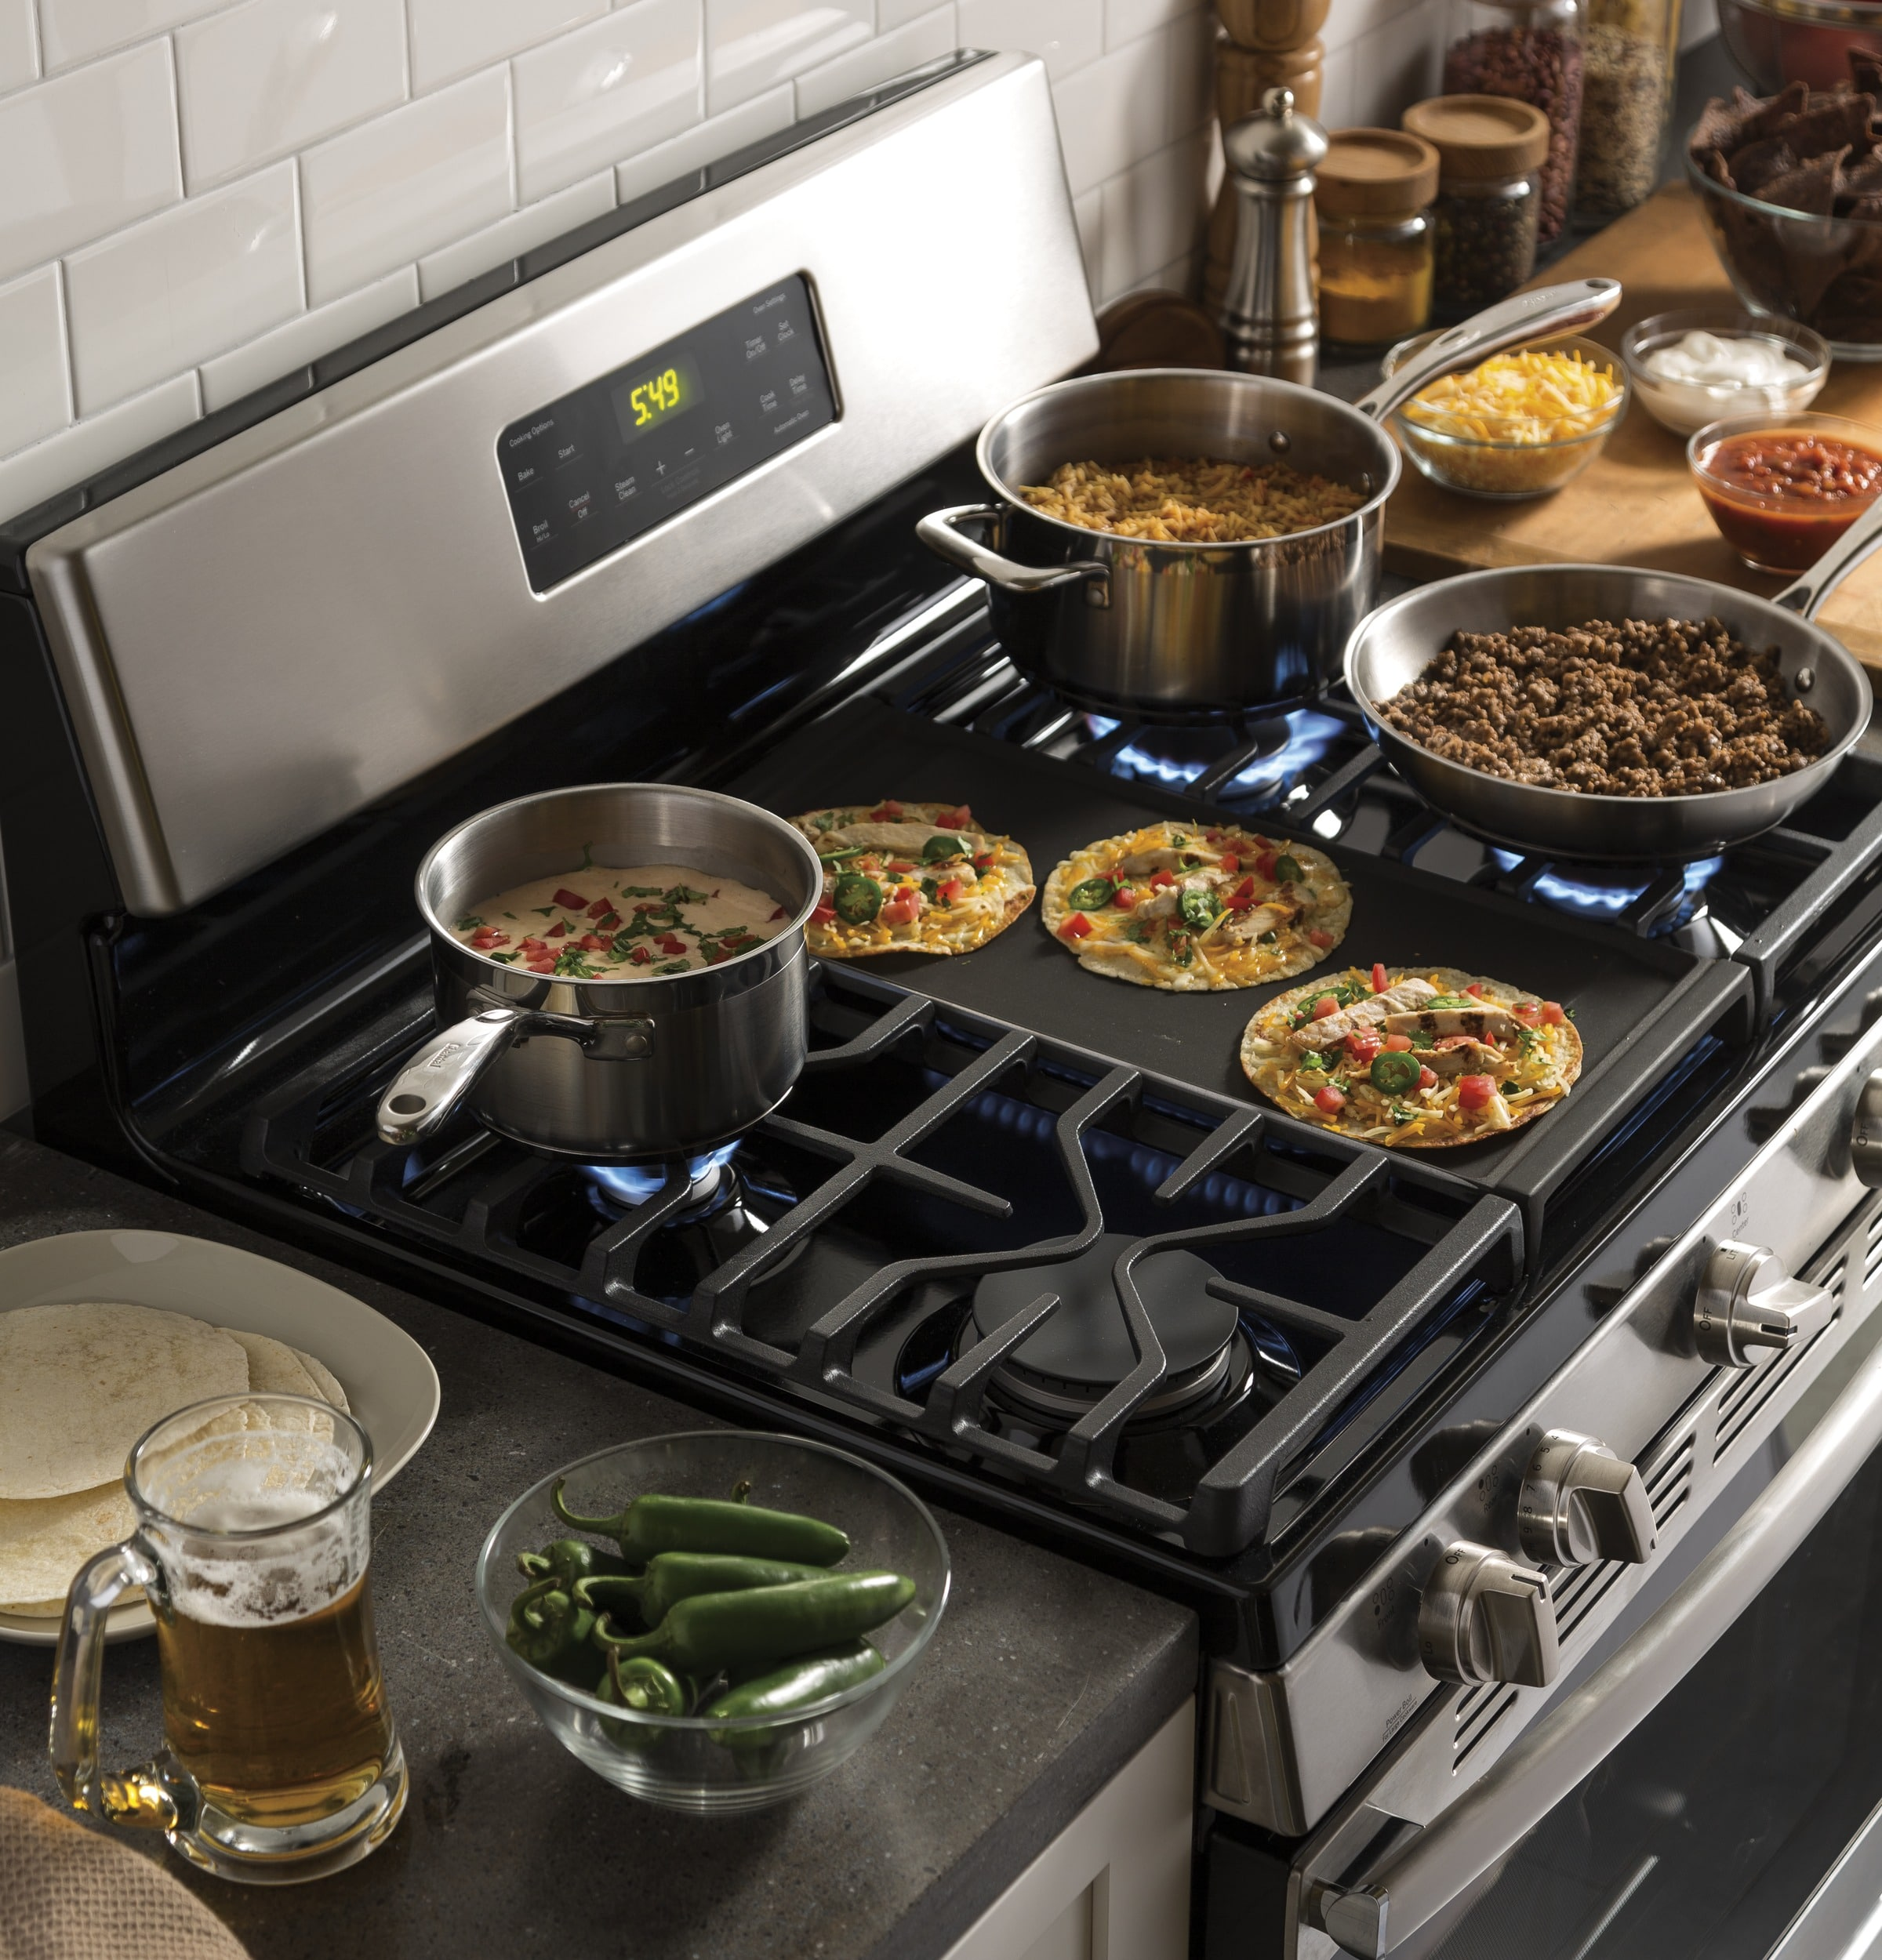 GE Appliance Remodeling Sales Event at Best Buy